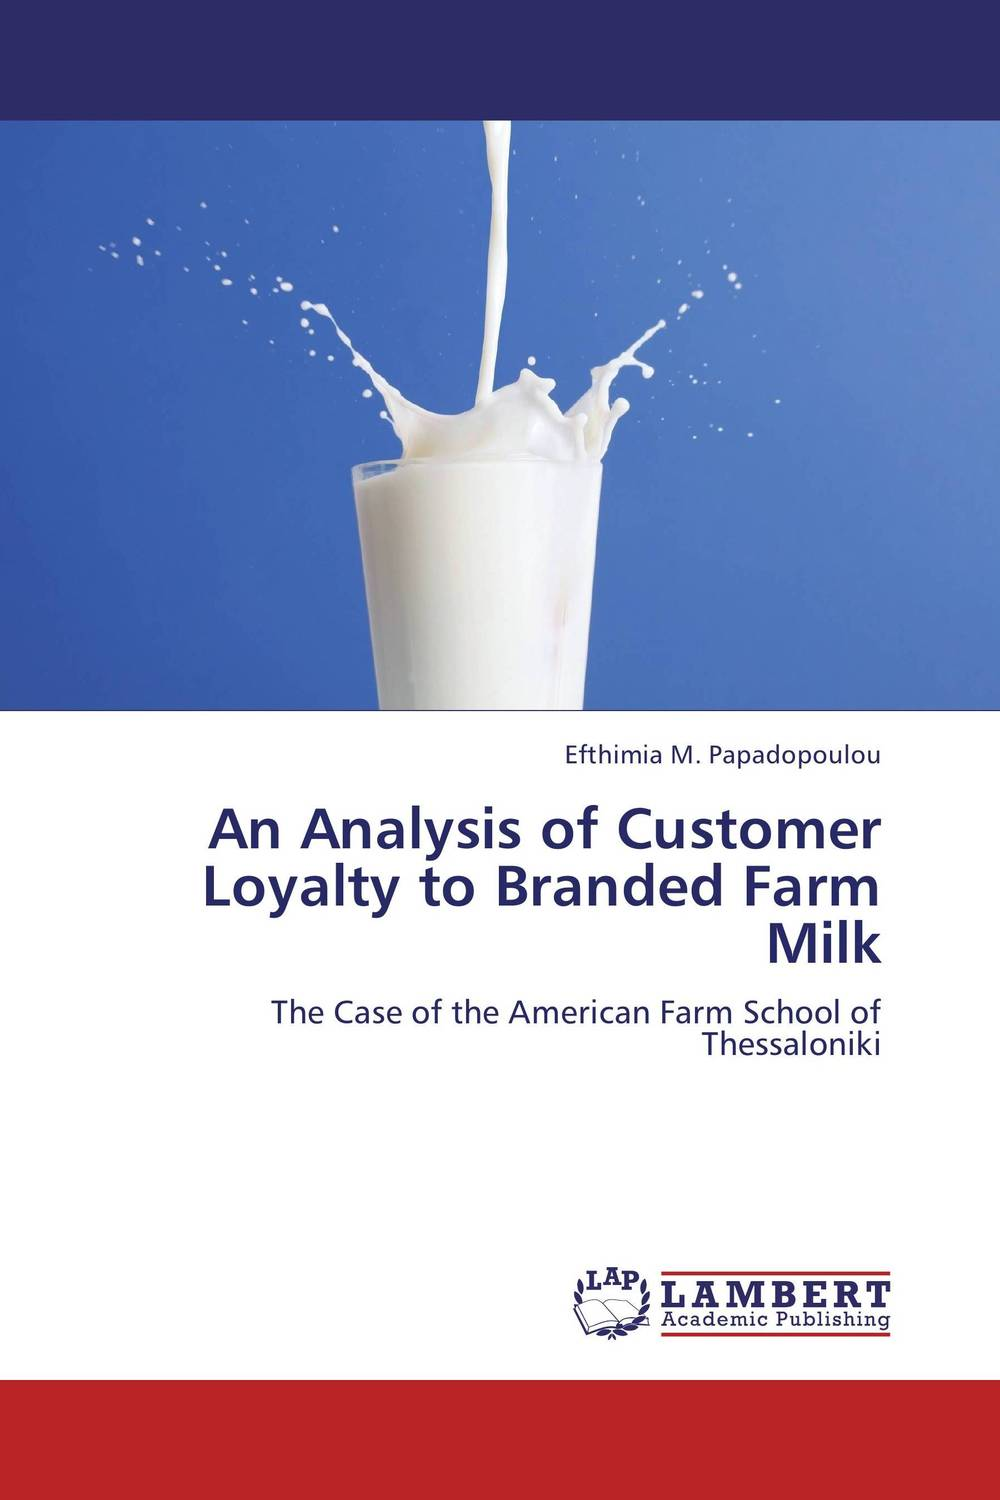 An Analysis of Customer Loyalty to Branded Farm Milk дефлекторы окон novline mitsubishi pajero sport 2008 комплект 4шт nld smipsp0832